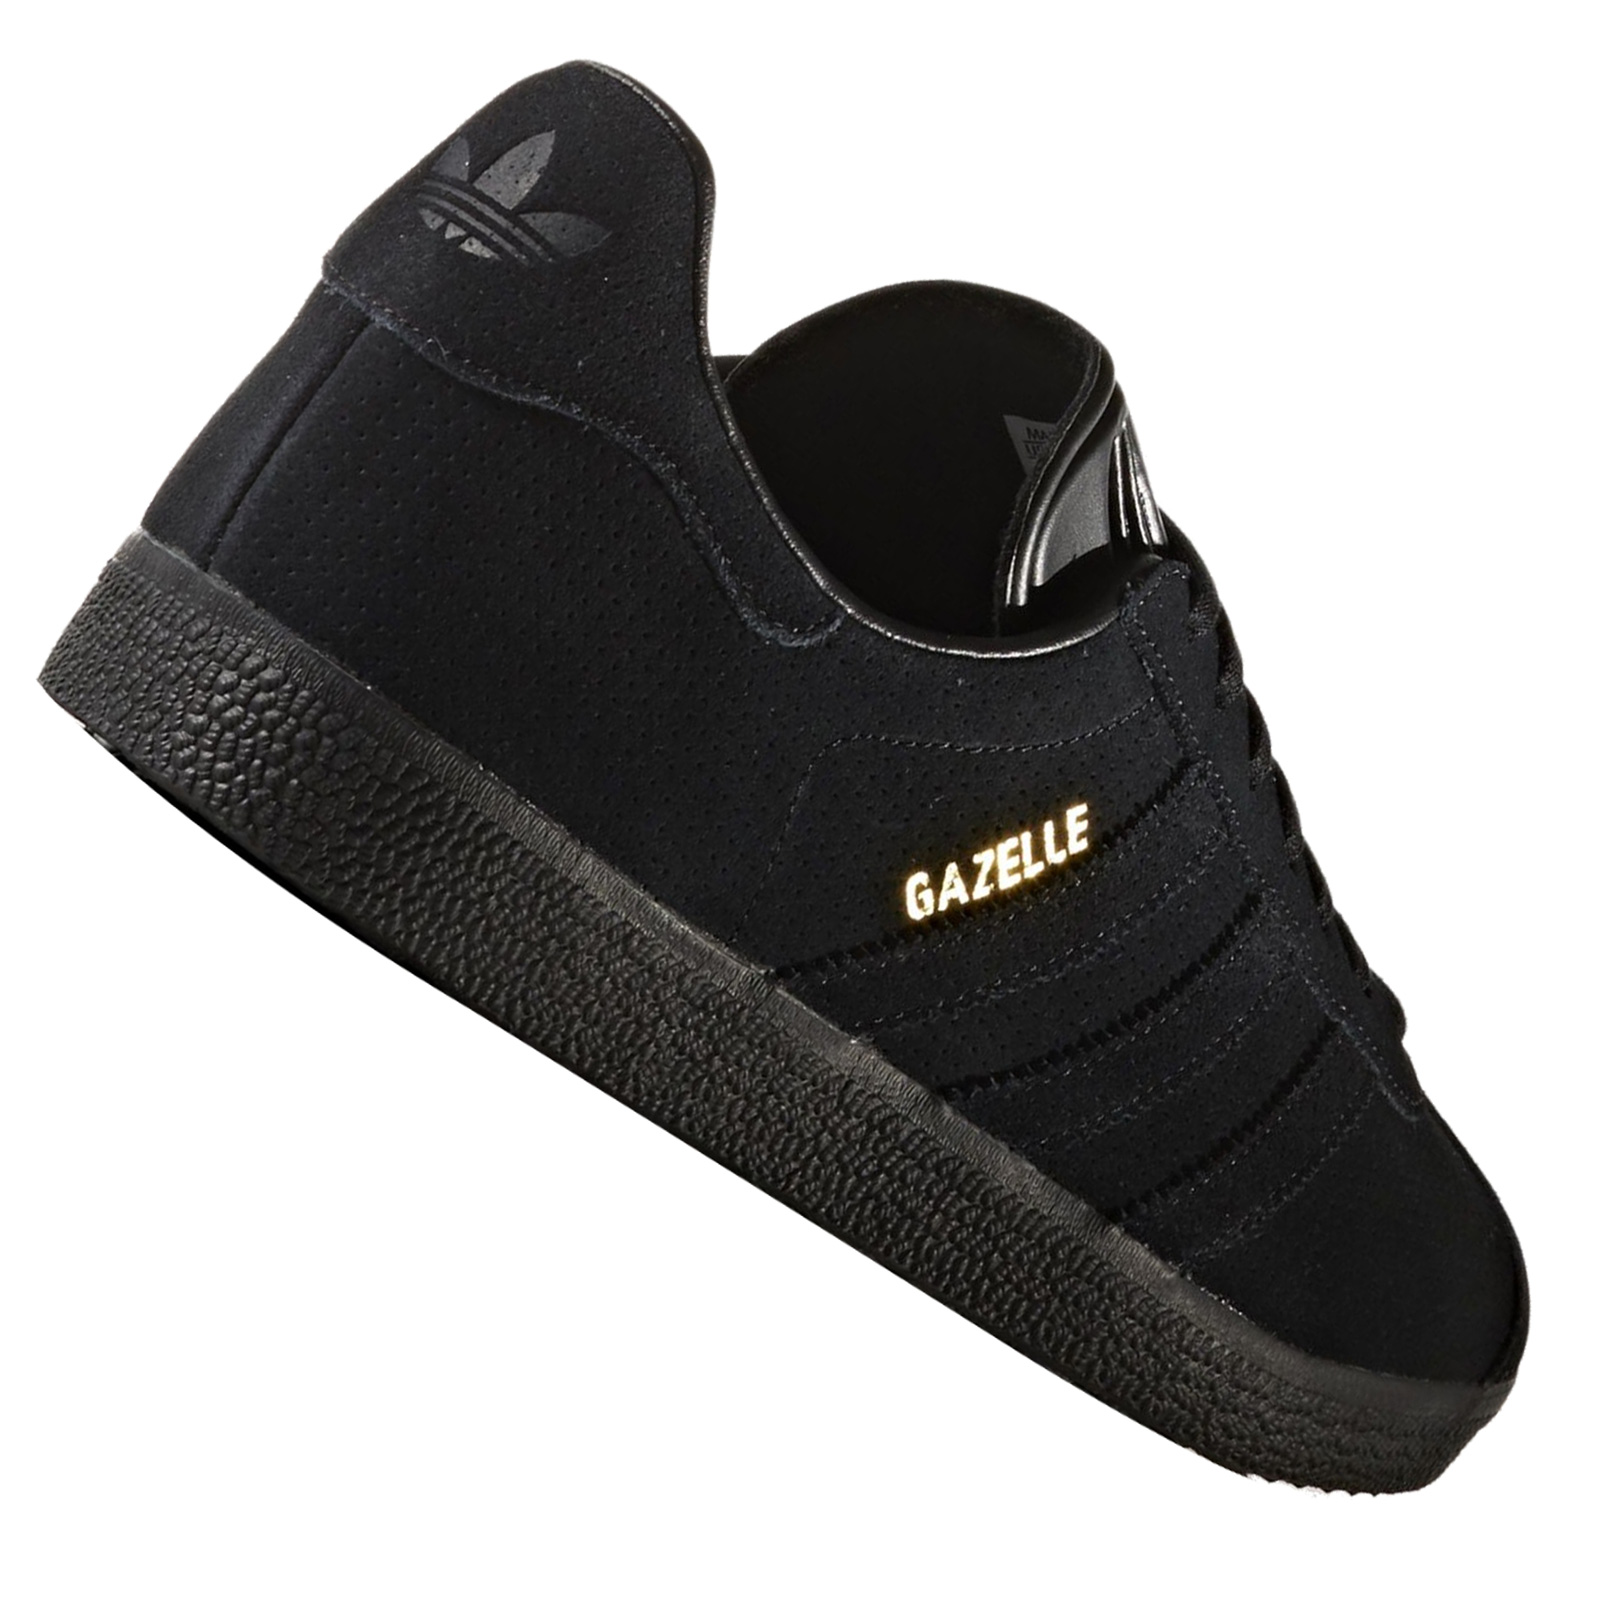 Adidas Black Show Original Gazelle Leather Retro All Sneaker About Details Trainers Title BrxdCoe